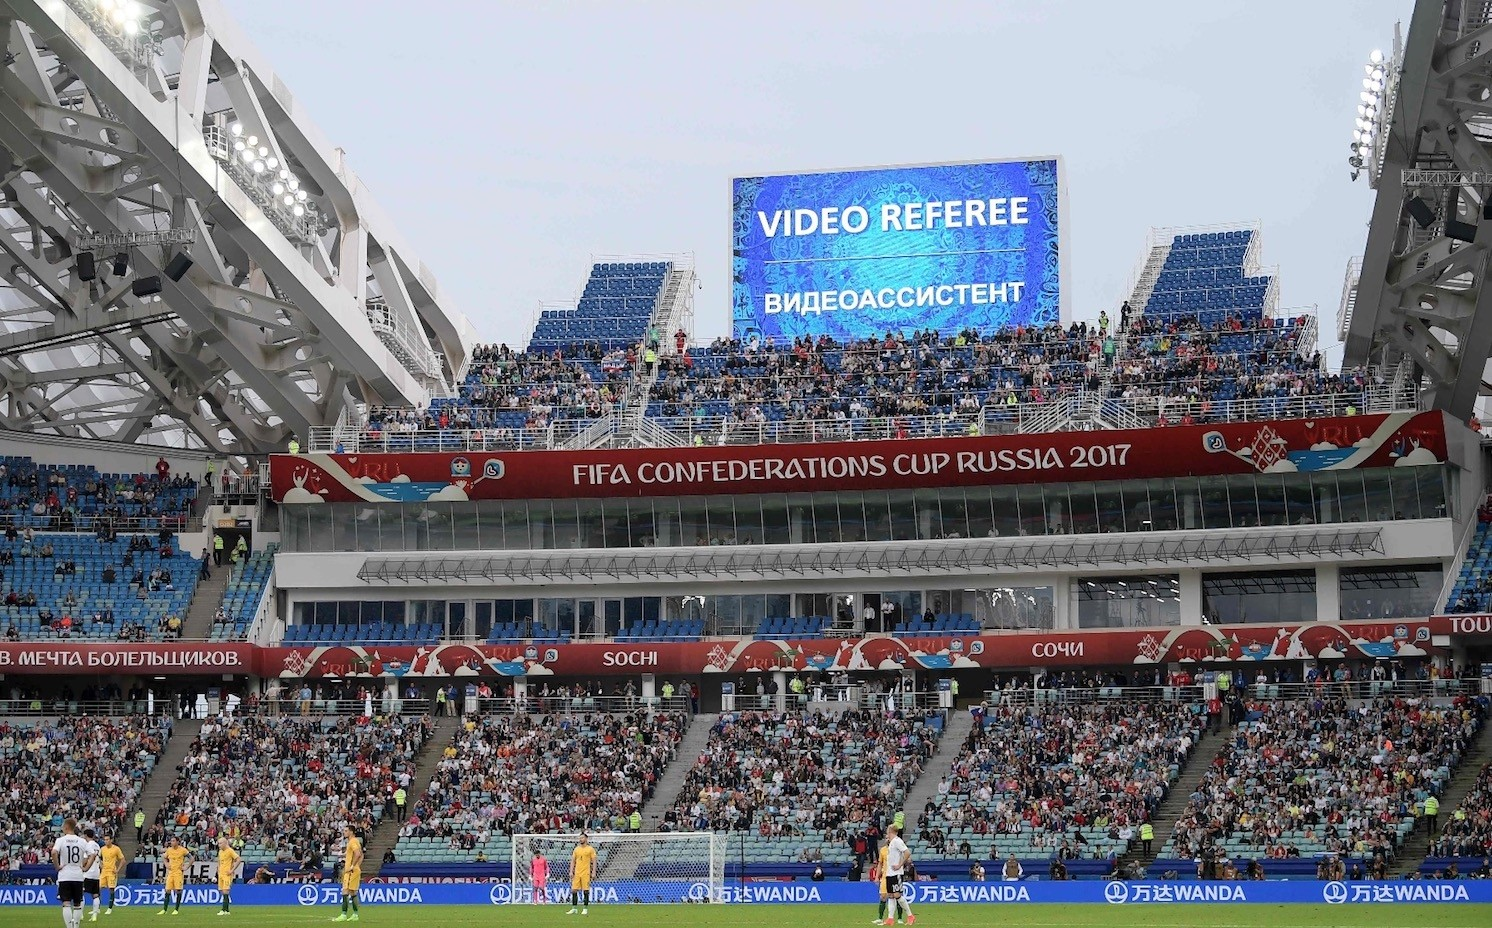 Players wait for a decision on a goal by video assistant referees during the Confederations Cup group B football match between Australia and Germany at the Fisht Stadium in Sochi on June 19, 2017.